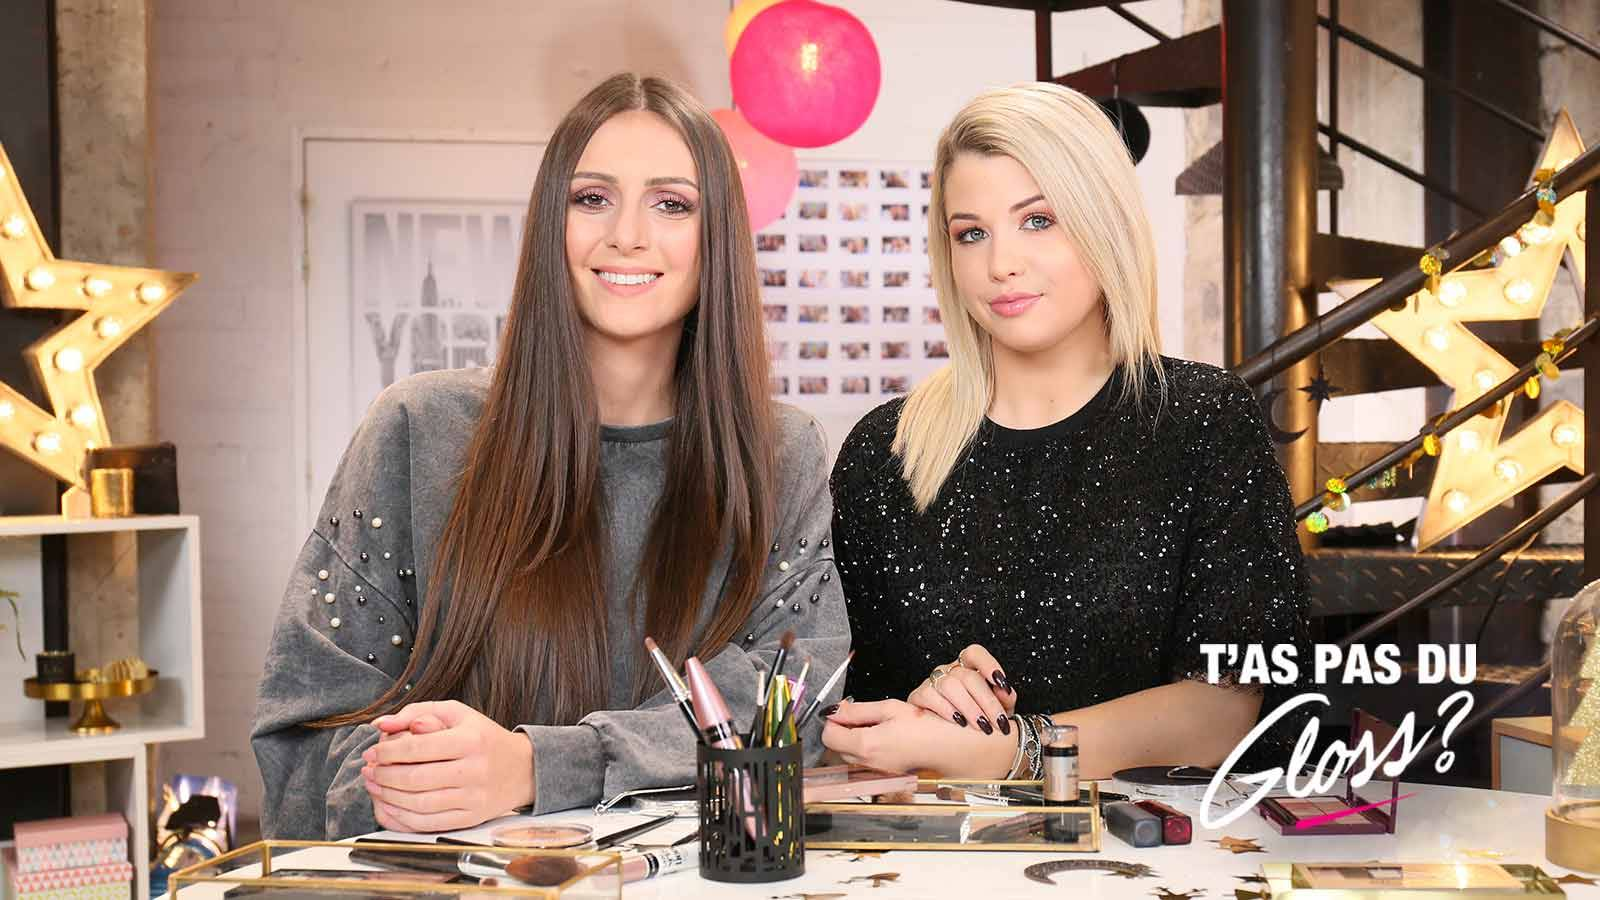 maybelline-tpg-maquillage-de-fete-114-video-16x9